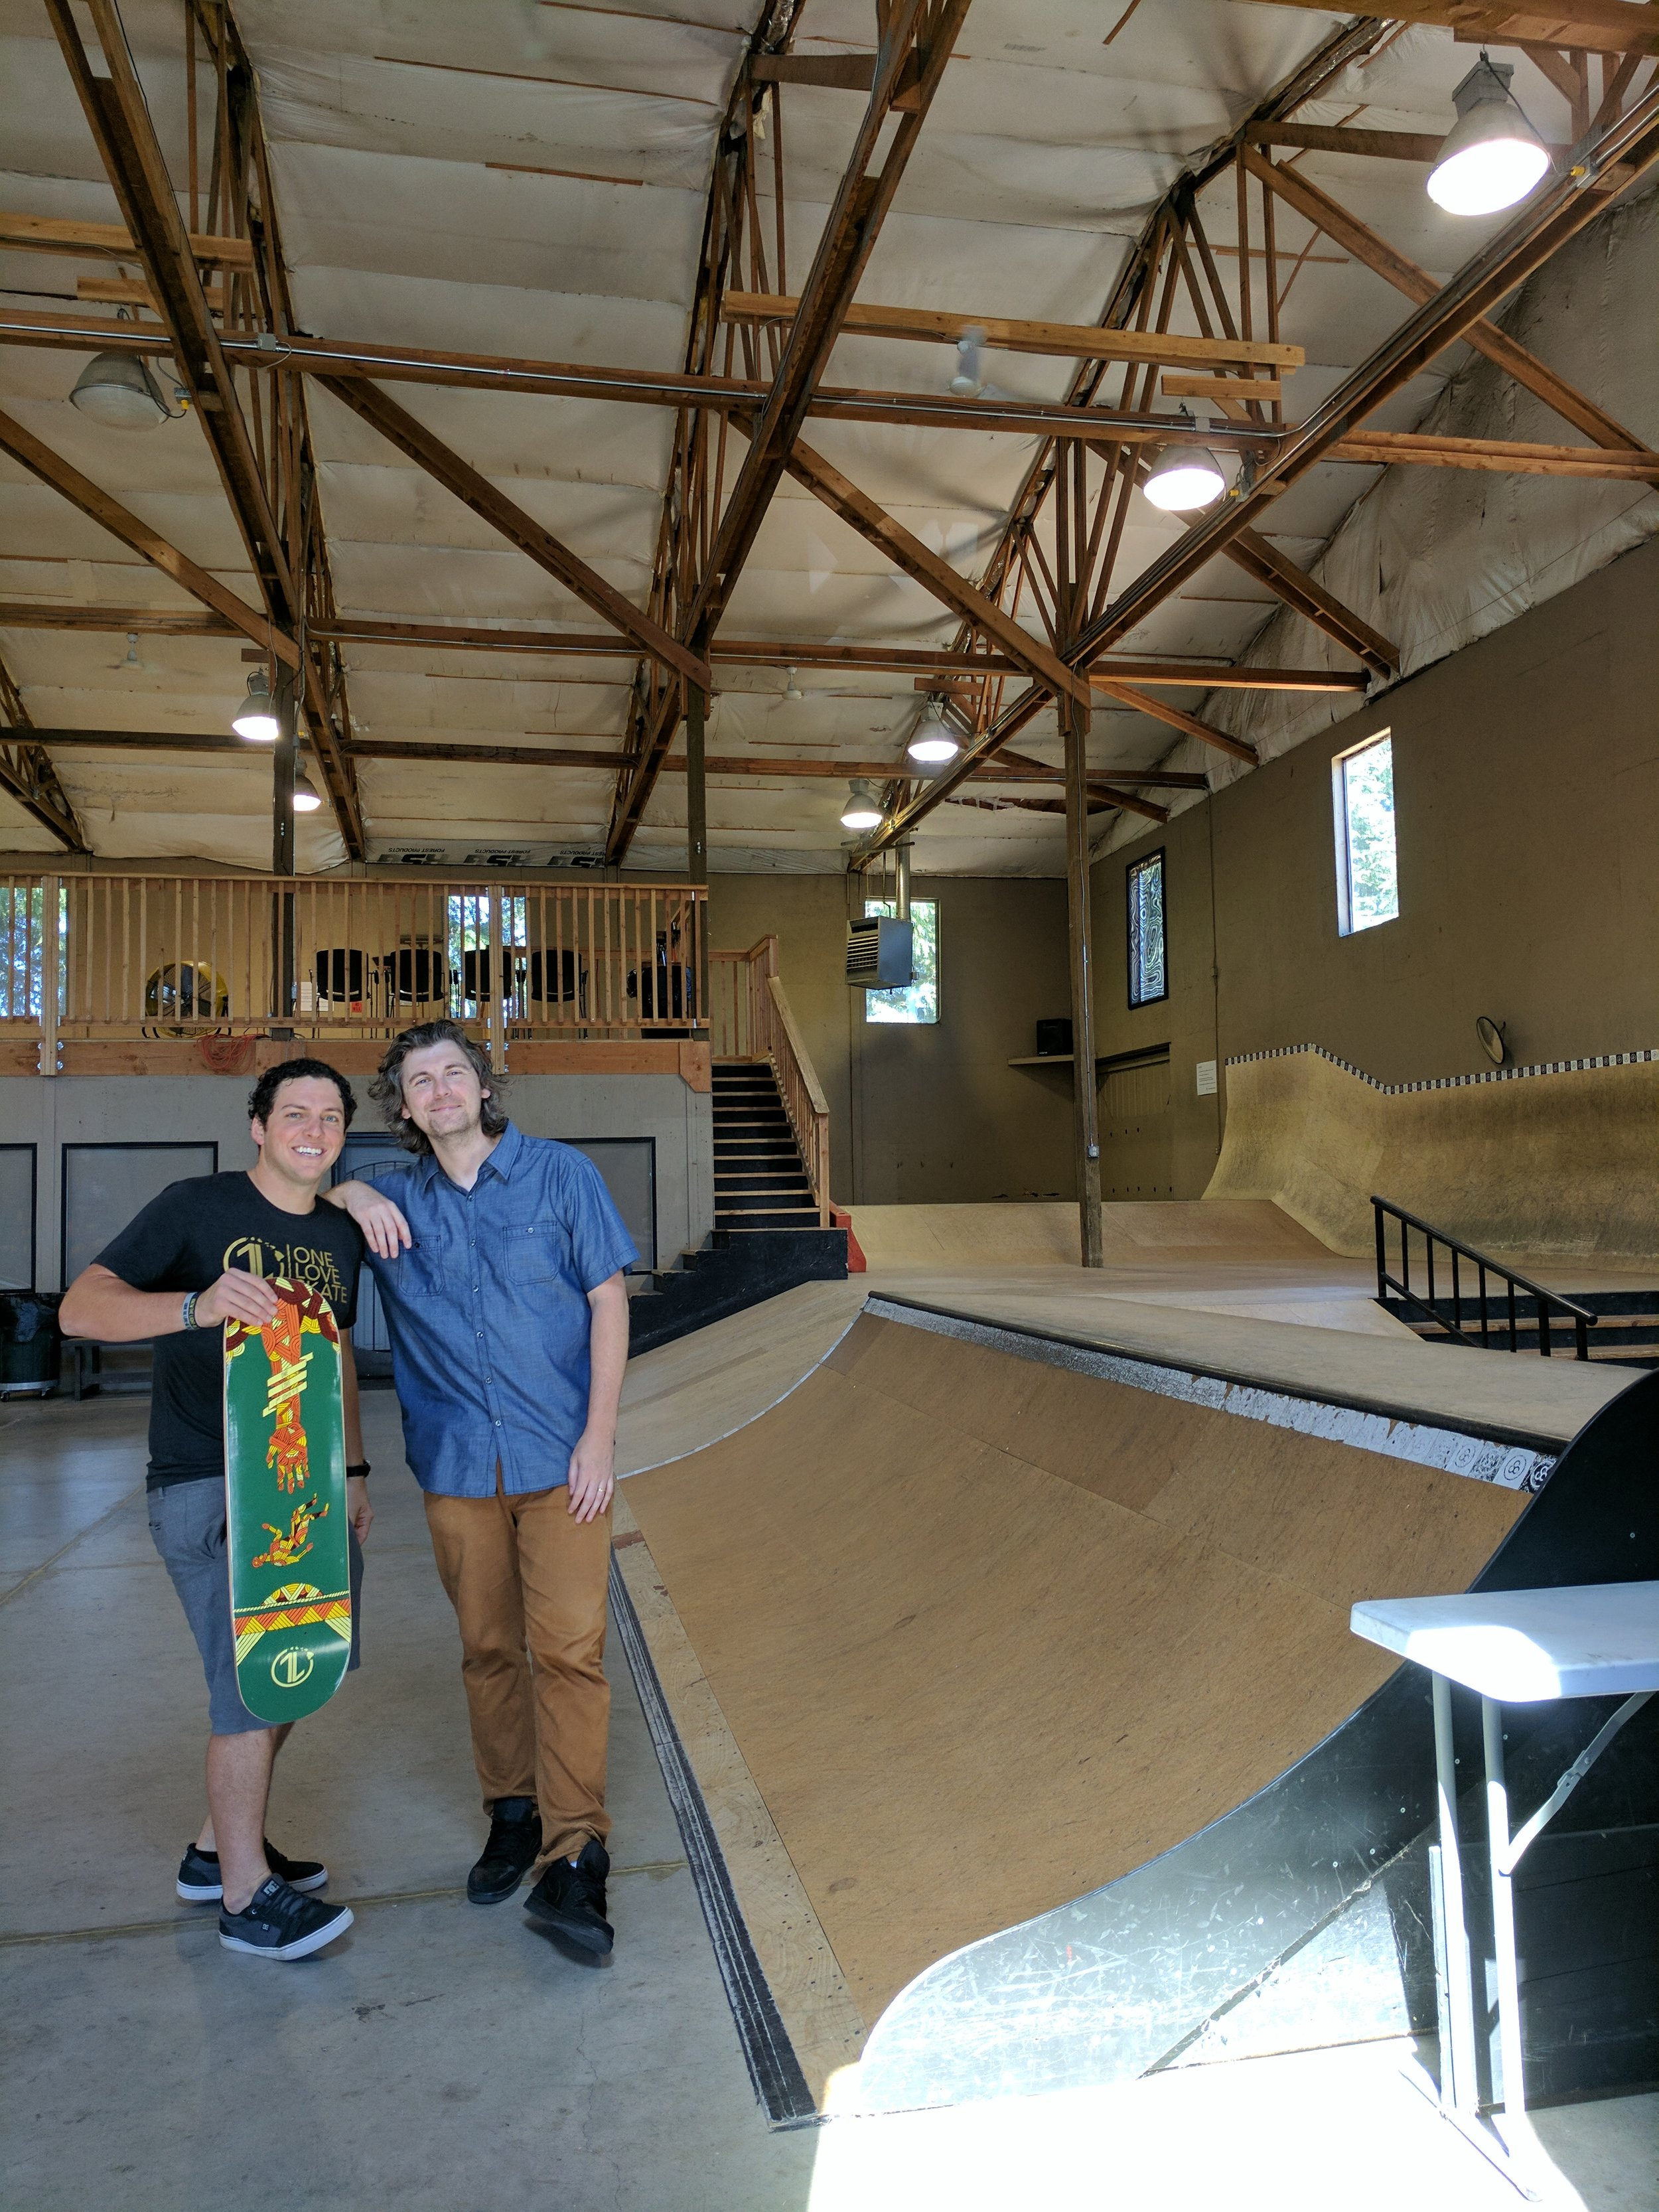 Such a blessing to get to hang with Tim Byrne & exchange a bunch of info & ministry vision along with burritos. Here's his misisonary update report from #OneLoveSkate action in Ashland, Oregon last October  http://timbyrne.org/2016/10/ashland-or-102-jesus-is-lord/comment-page-1/#comment-44